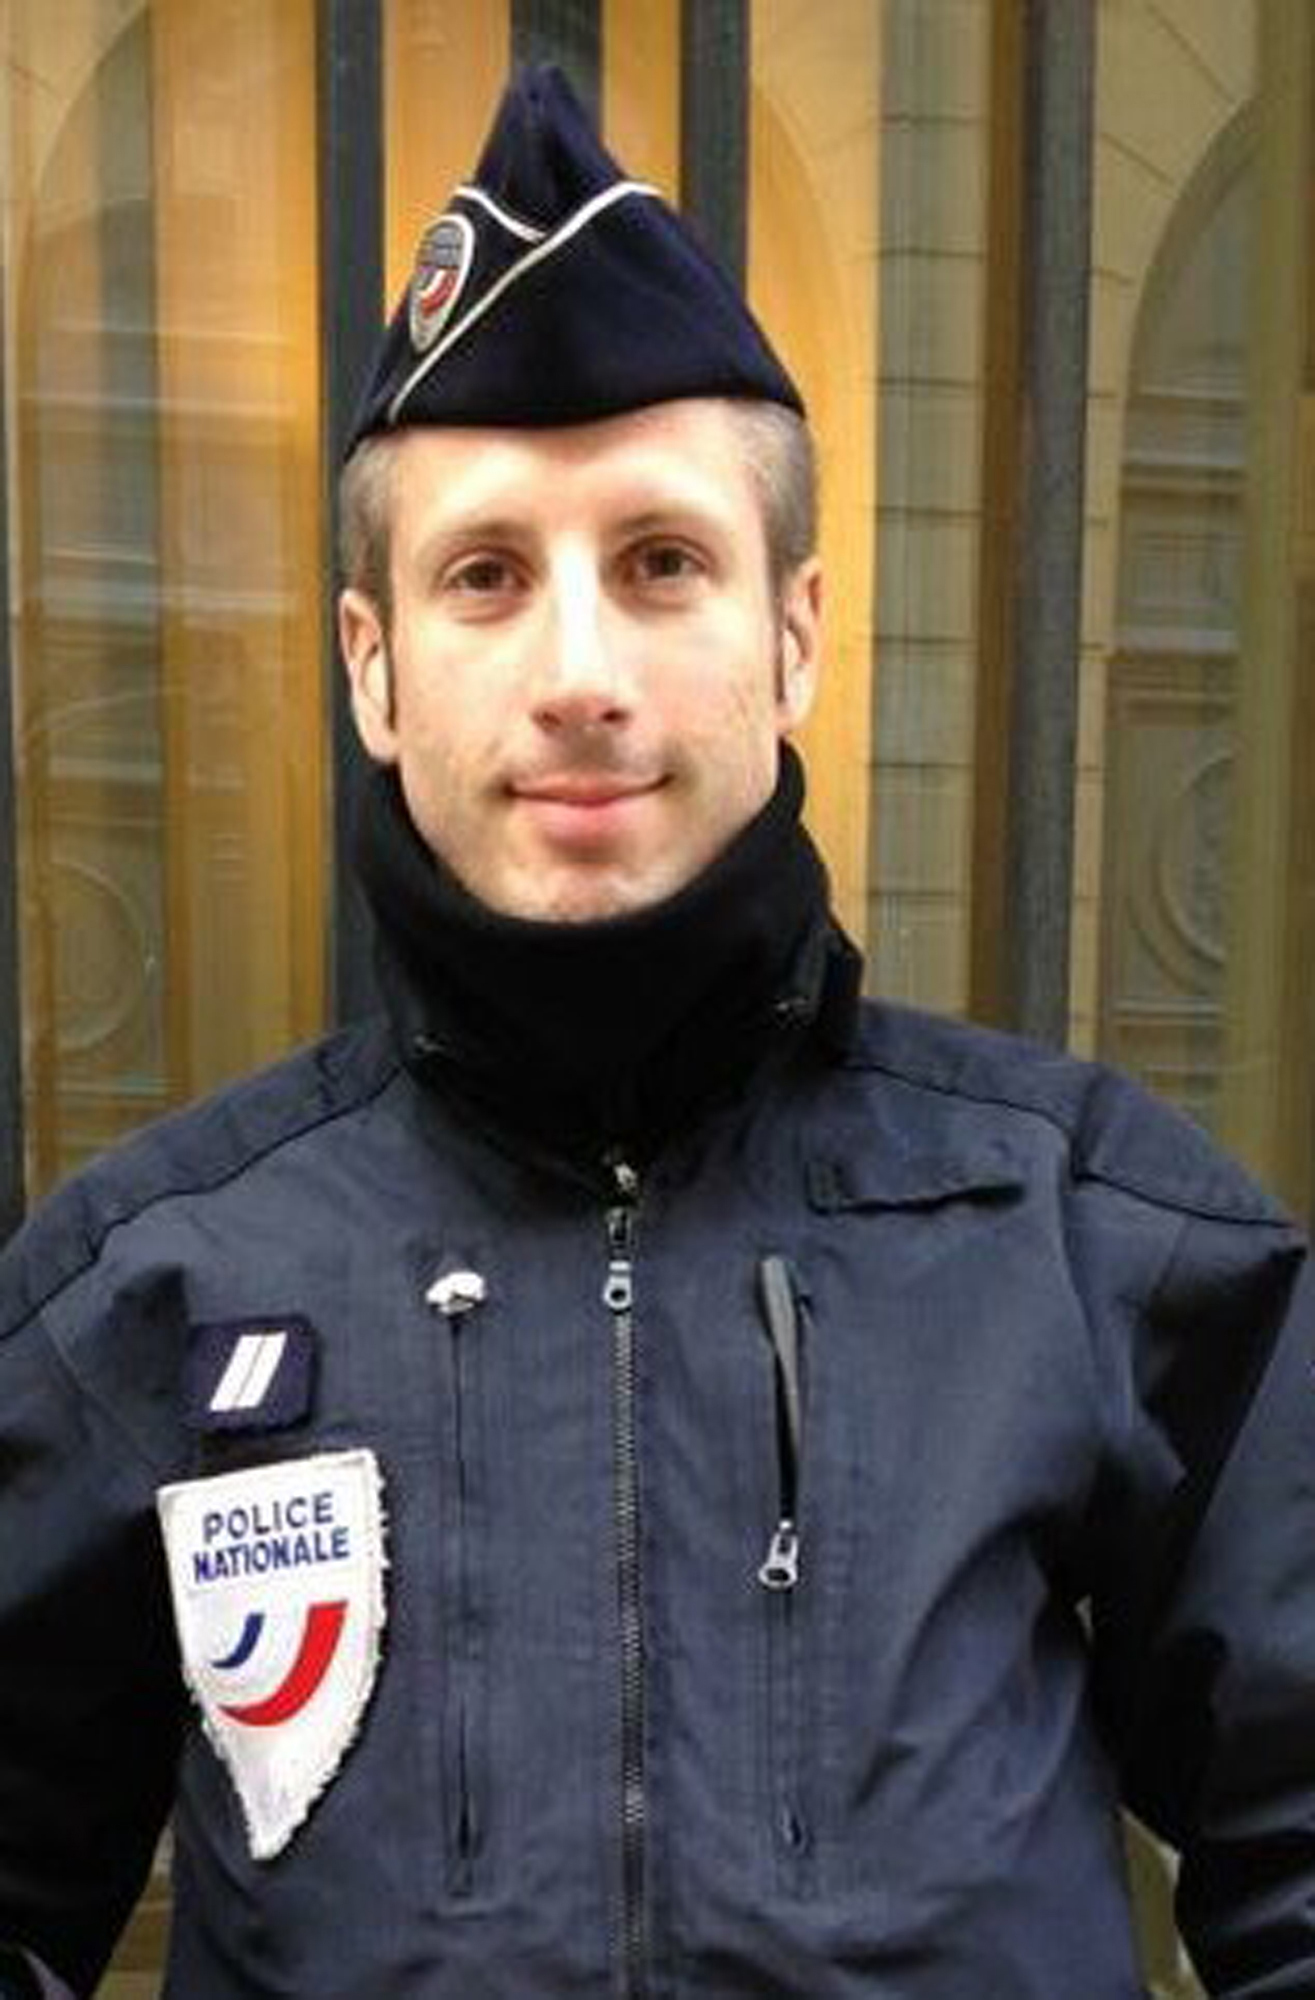 This undated image provided on April 21, 2017, by FLAG, an association of LGBT police officers, shows French police officer Xavier Jugele.